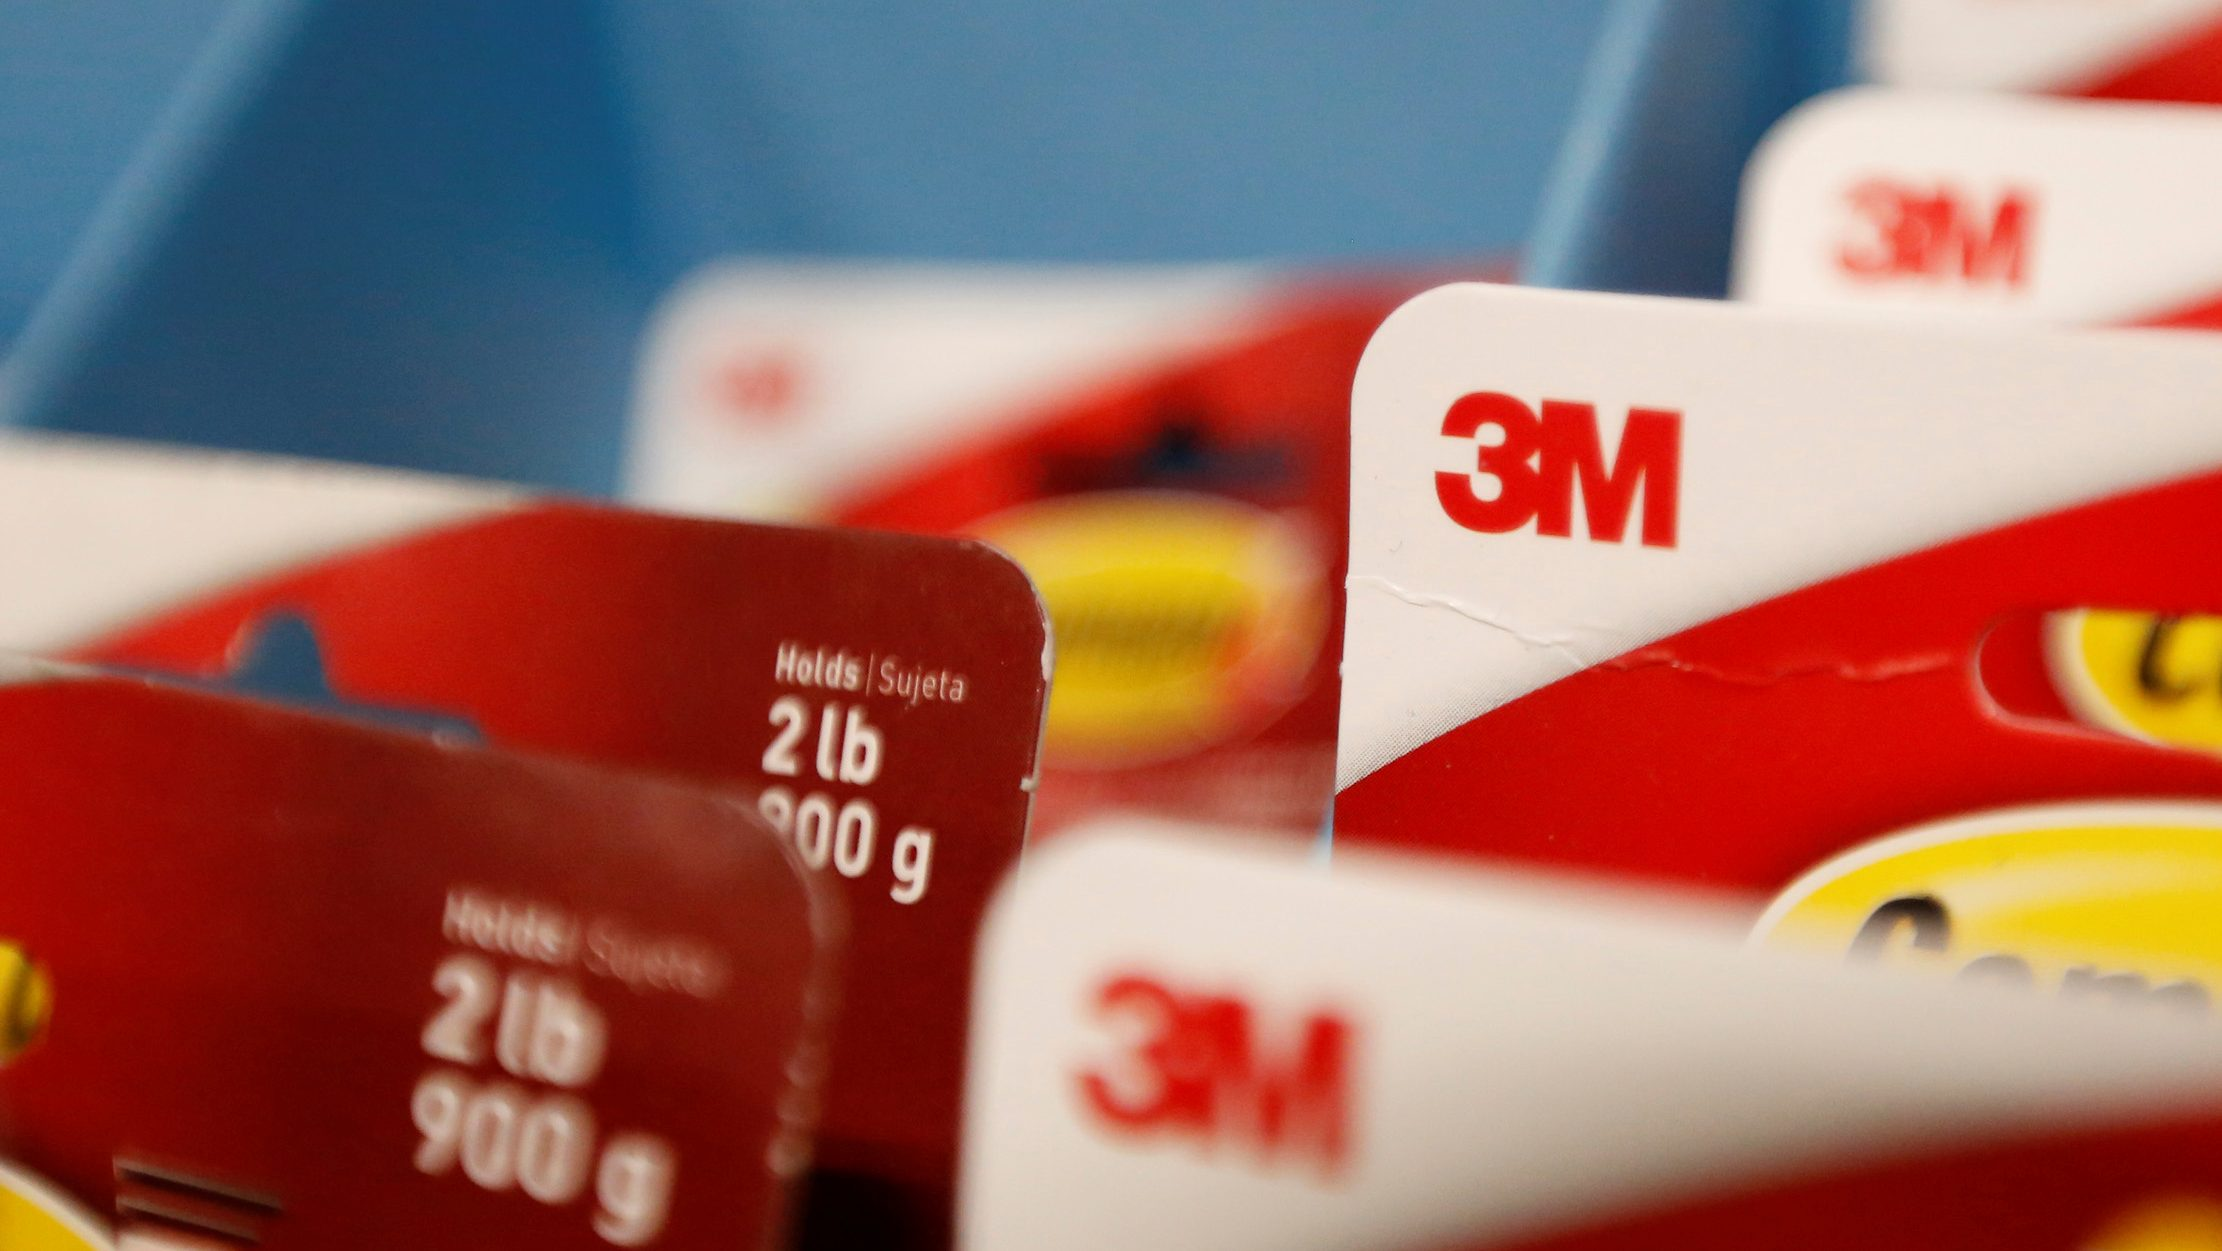 3M has long known it was contaminating the food supply